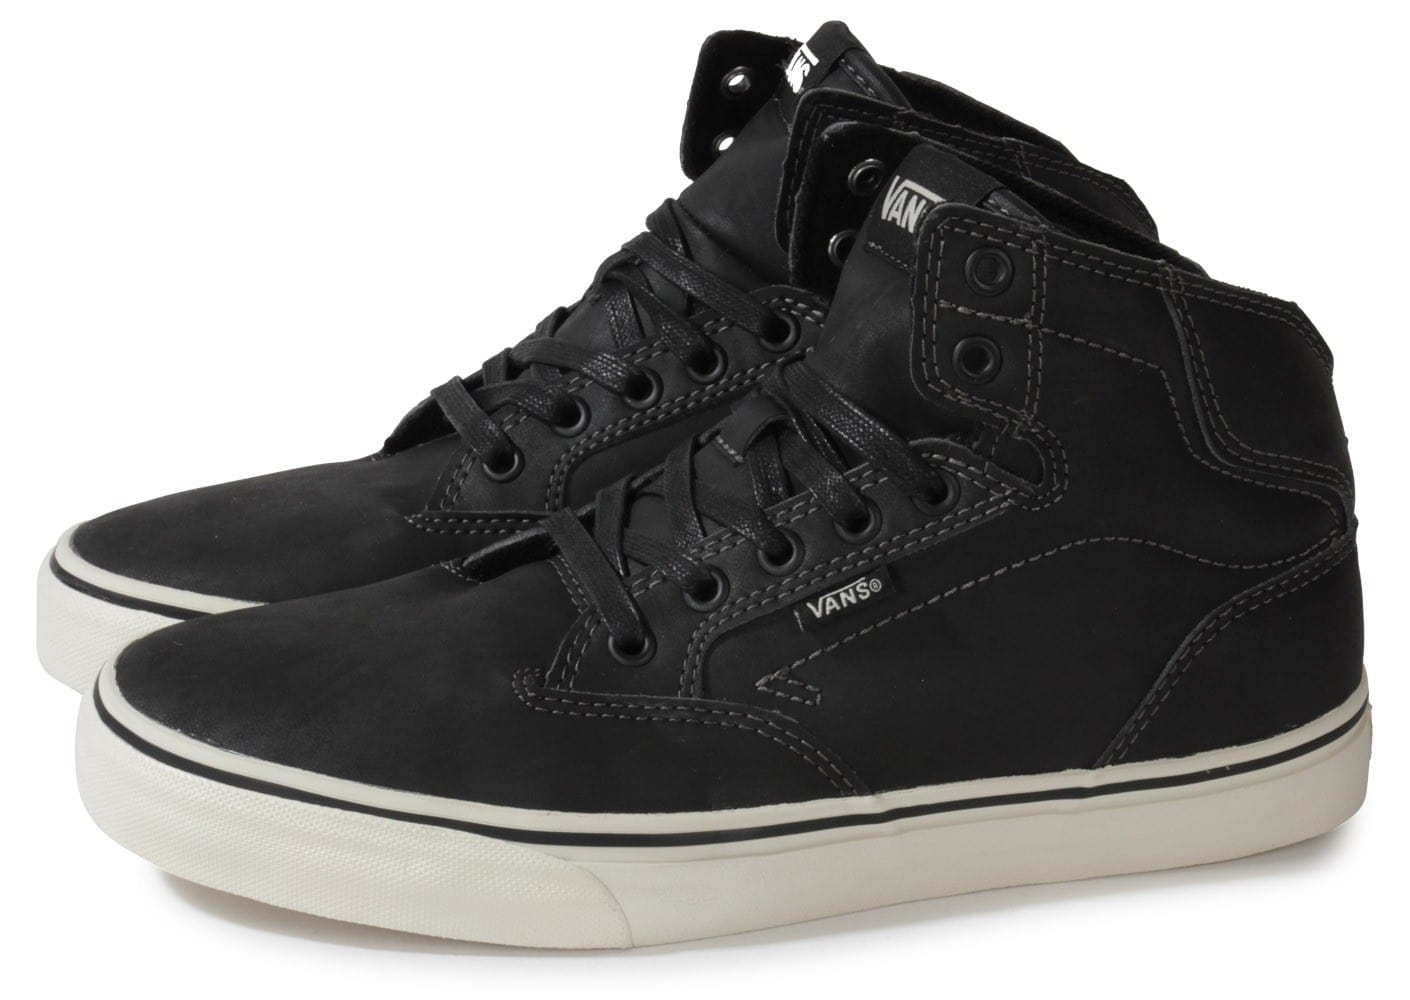 Chaussures Vans Suede noires homme 3ZoX9